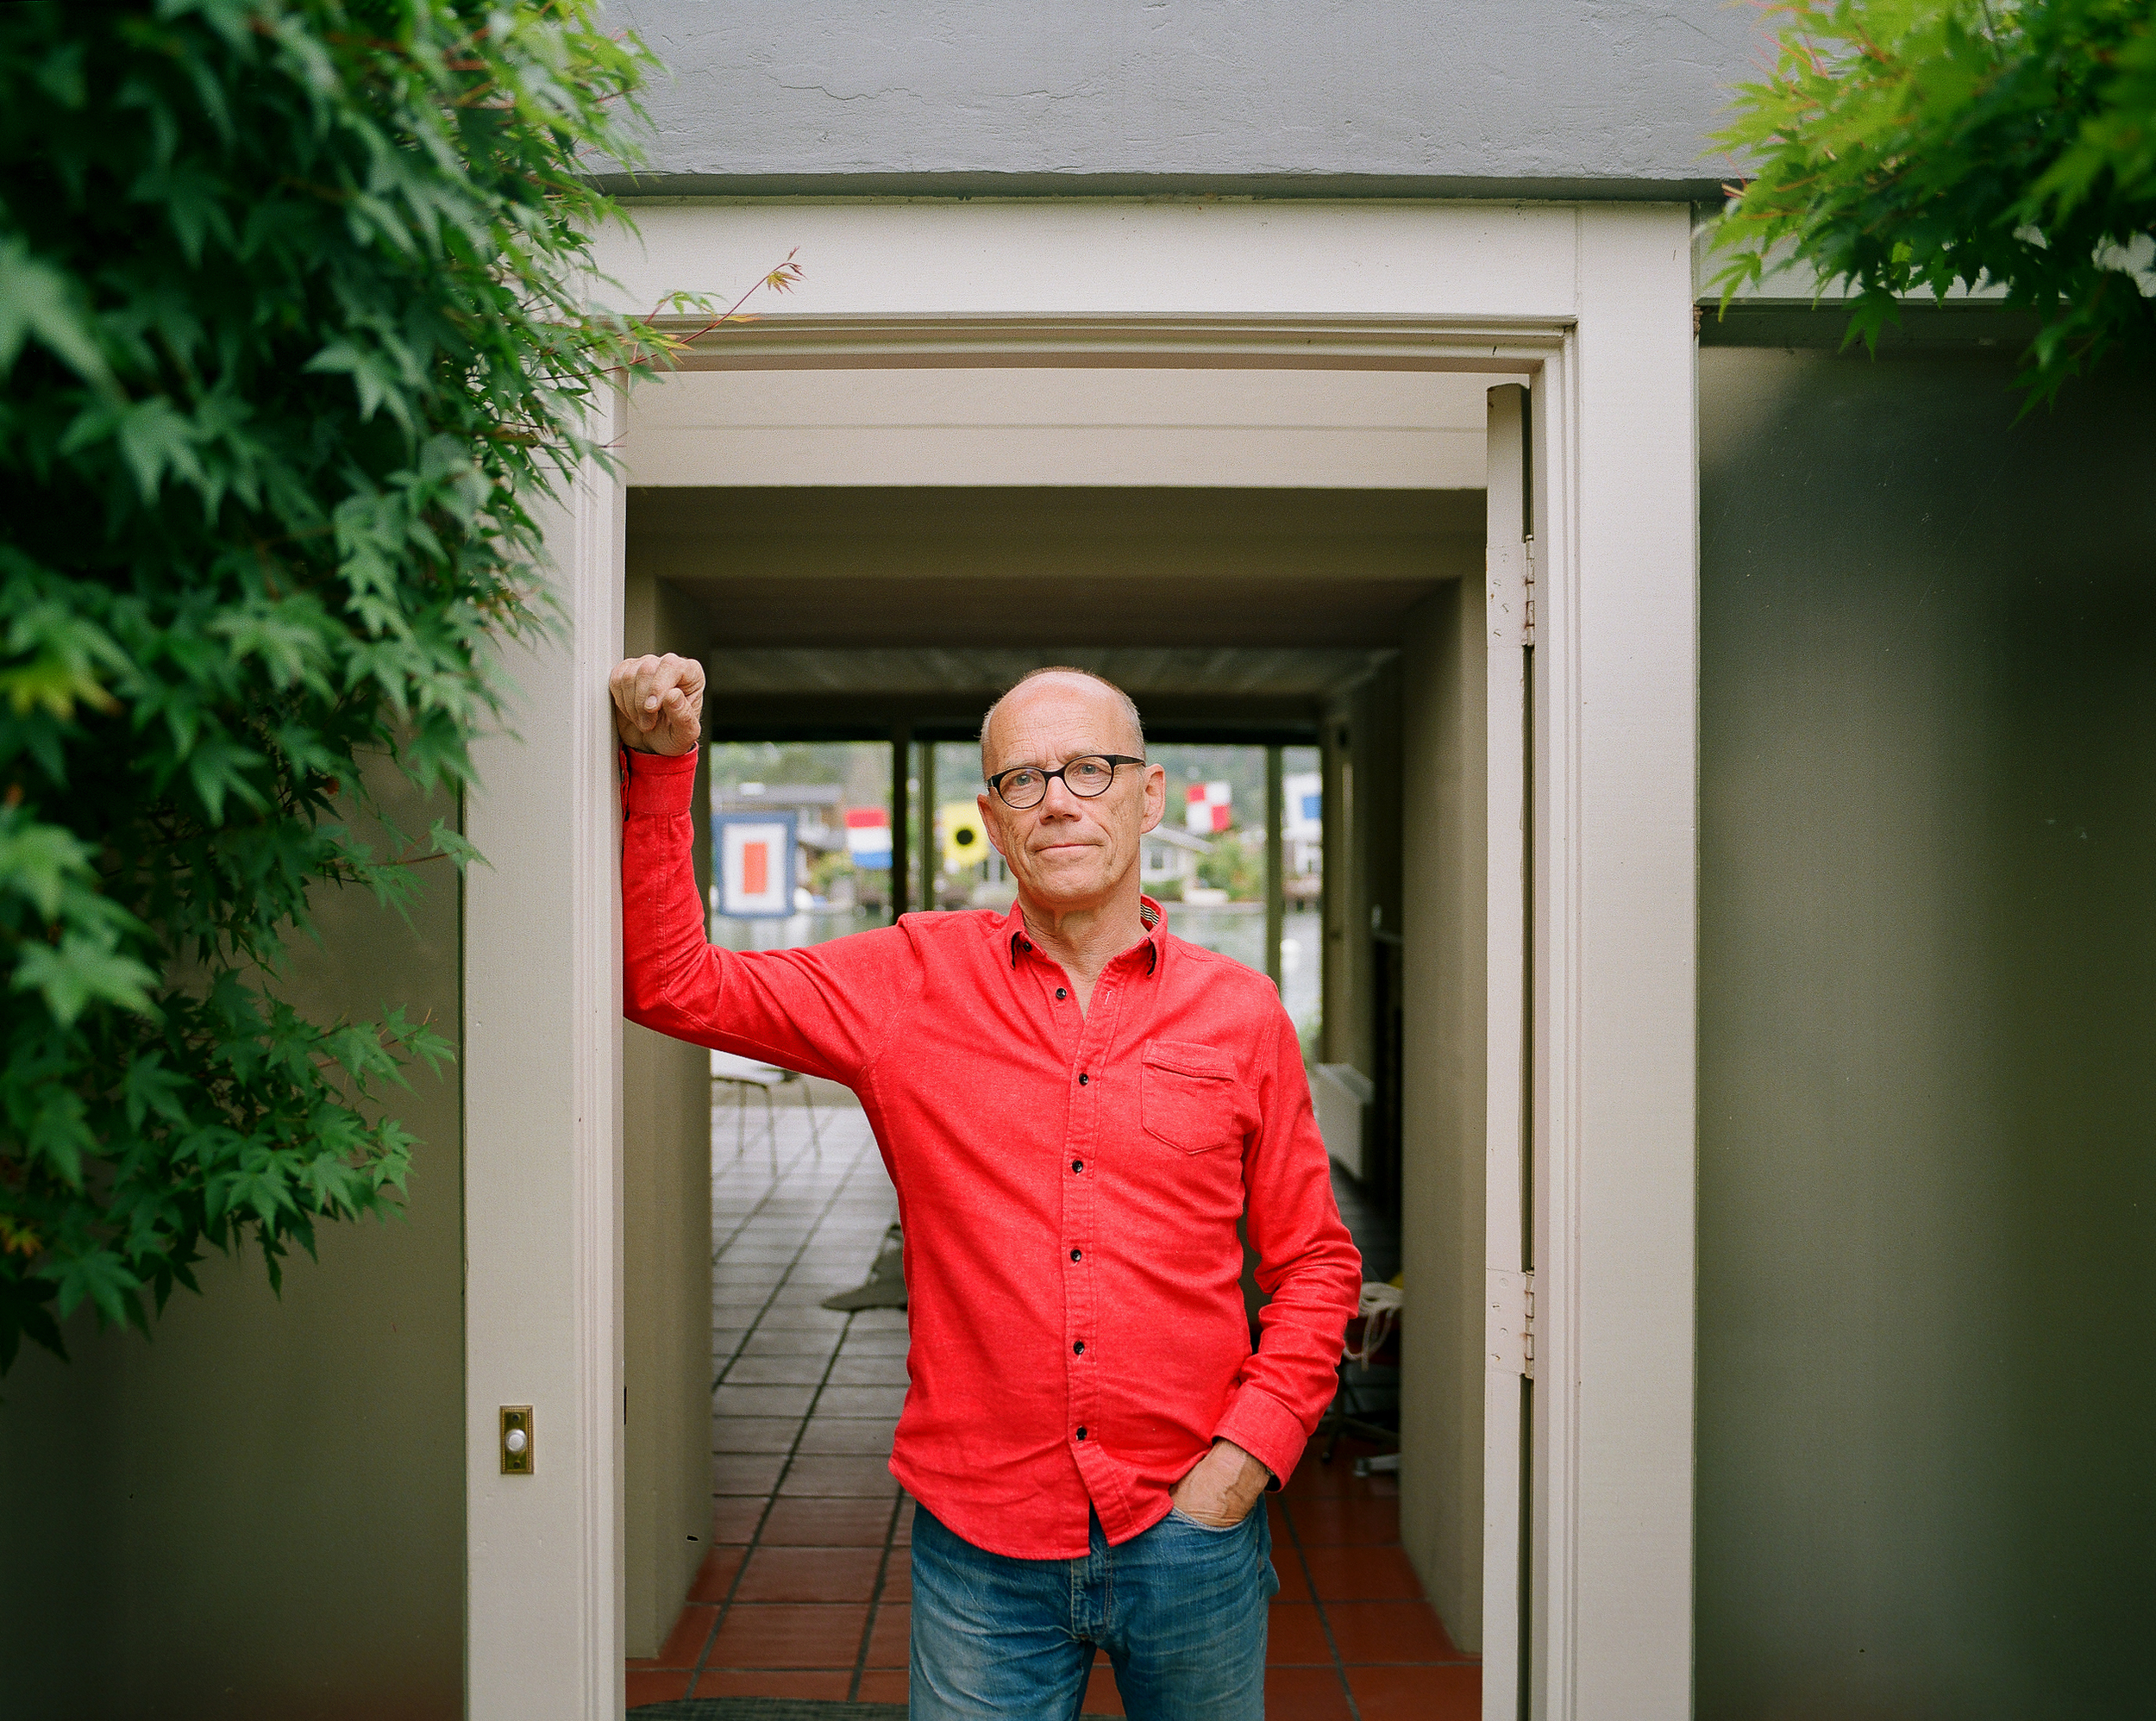 Erik Spiekermann is one of the most well-known and creative thinkers in design. A type, information and graphic designer by trade, he began his career teaching at the London College of Printing in the 1970s. In 1979, Spiekermann co-founded MetaDesign in Berlin, and in the 1980s, at the cusp of the PC revolution, he co-founded FontShop, a distributor of electronic fonts. He has designed fonts such as Berliner Grotesk, ITC Officina, Nokia Sans and FF Meta. He is also the co-founder of design house Edenspiekermann. He divides his time between Berlin and the Bay Area. (Bio Source: http://pi.co/erik-spiekermann/)